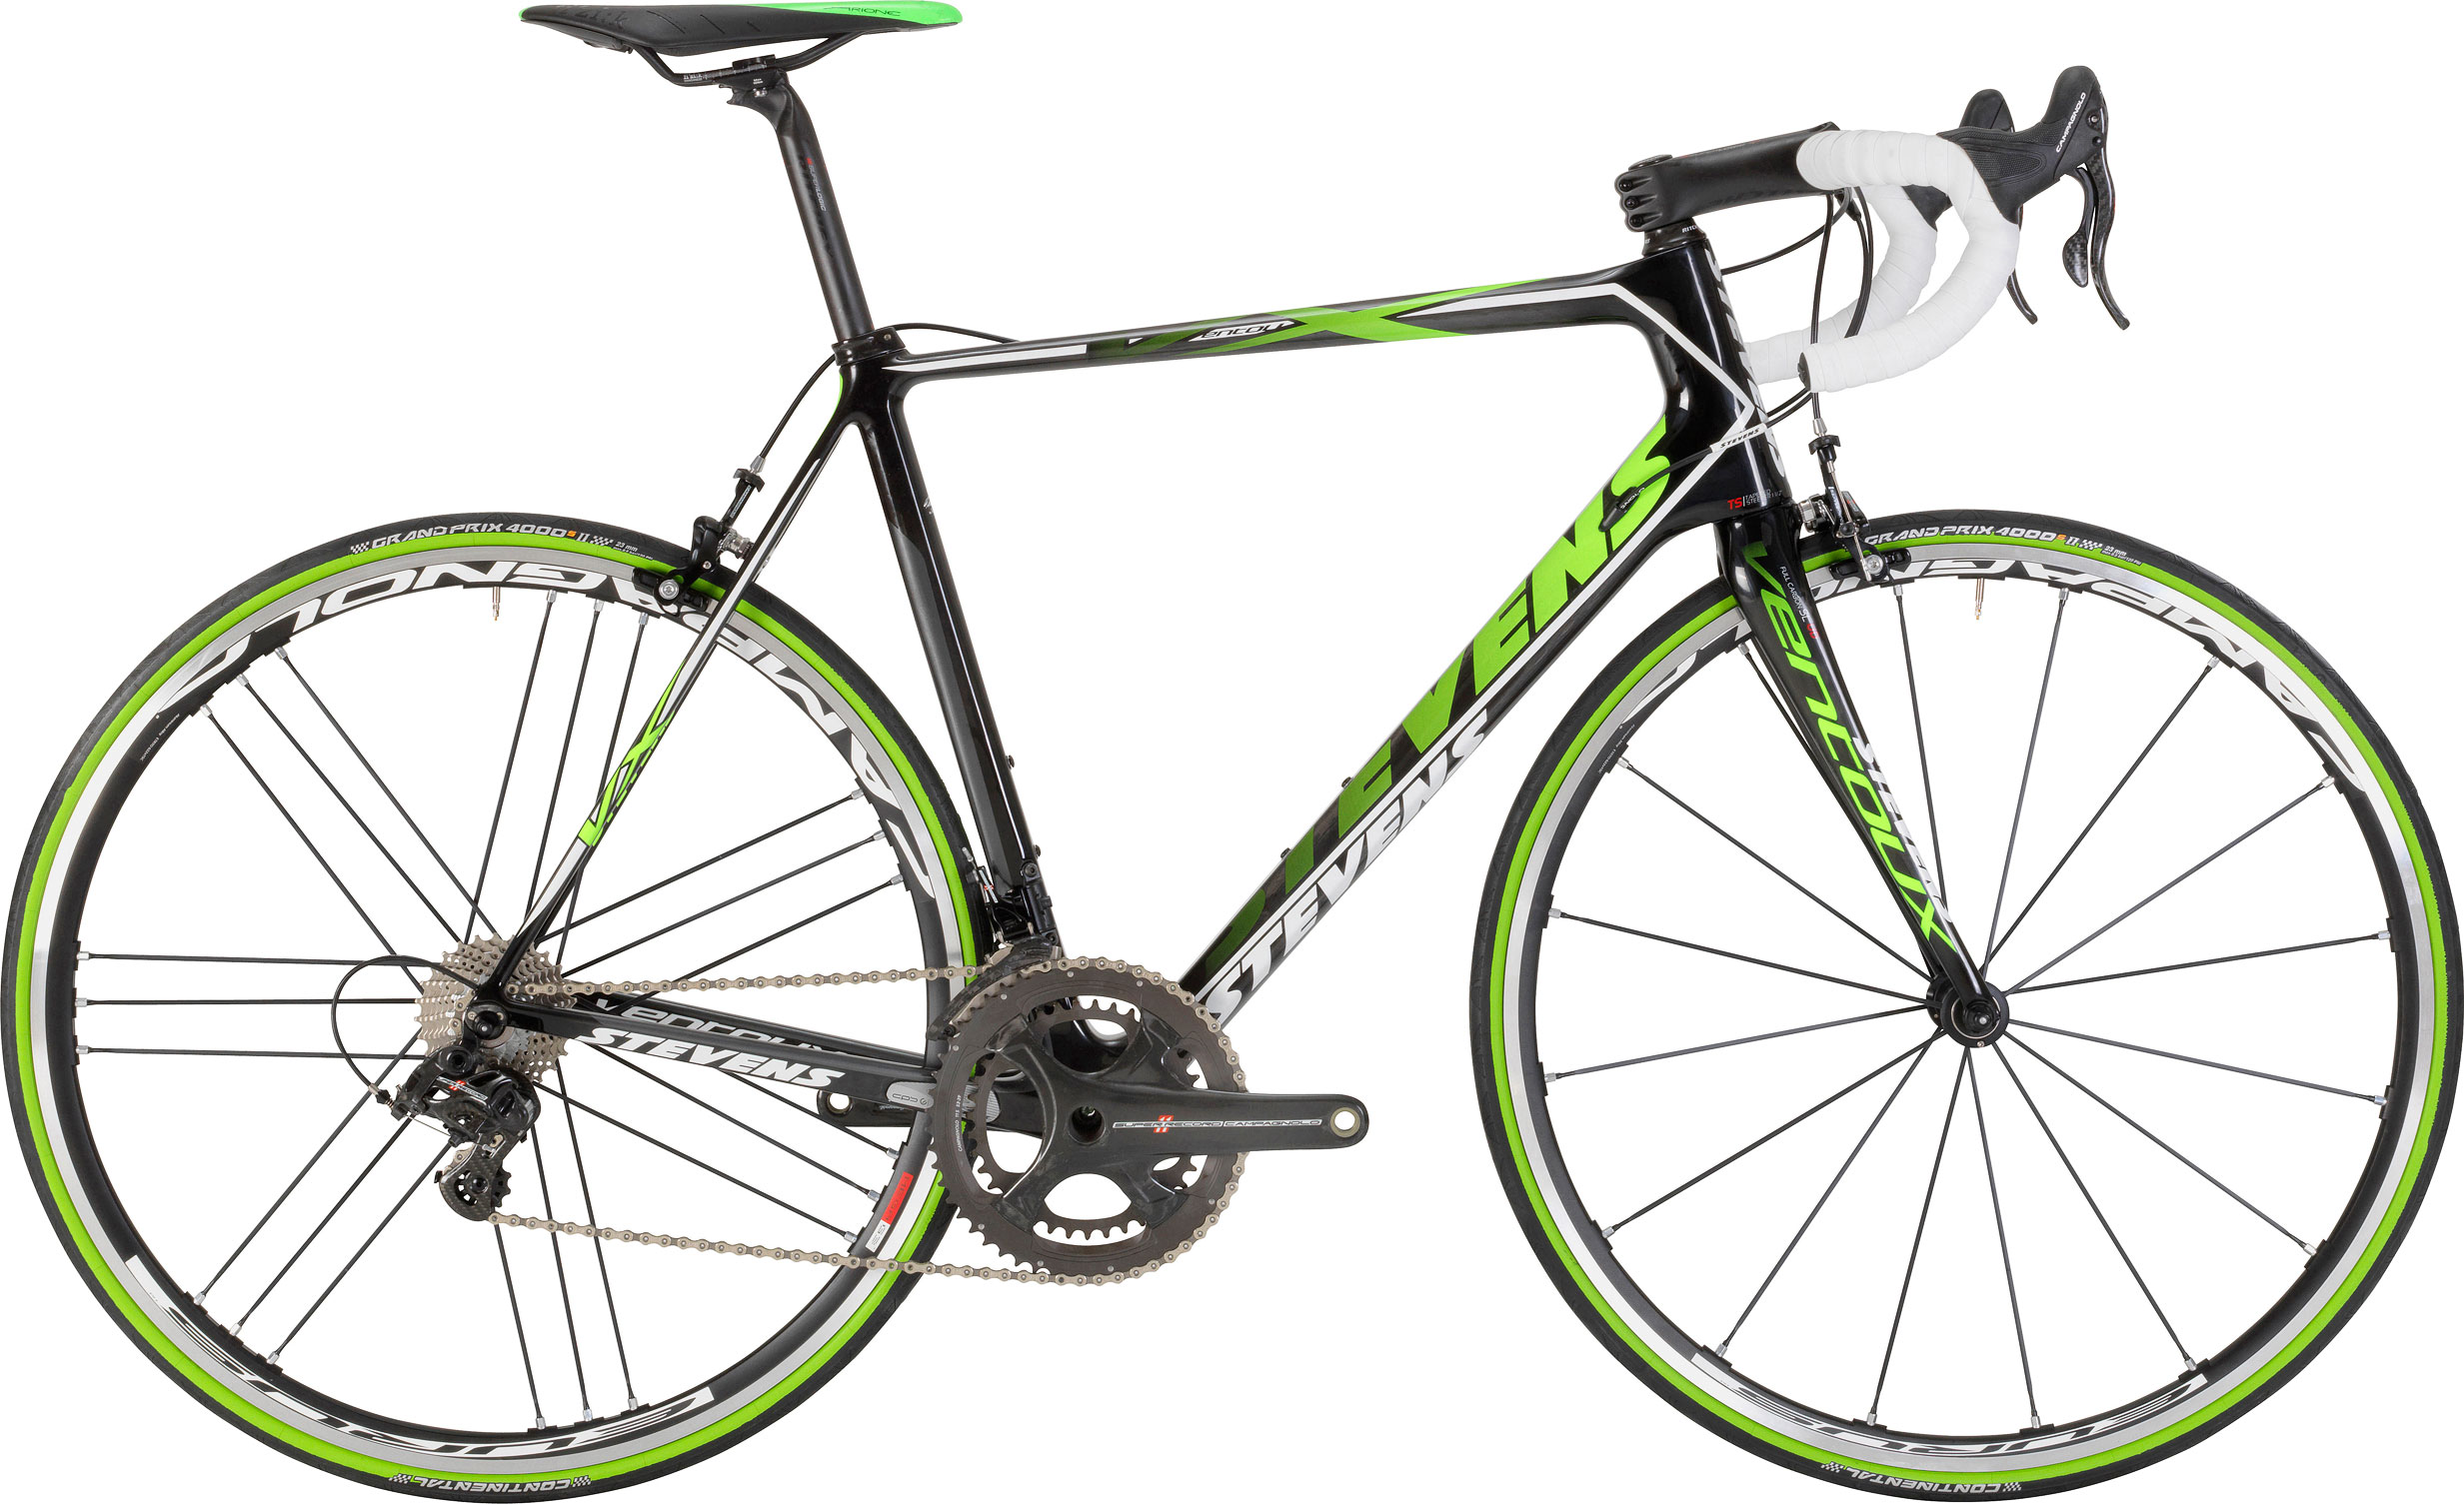 2015 Stevens Ventoux green super record campyneuroticarnutz2015 Stevens Ventoux green super record campyMerida scultura 2014 dura ace lime pink